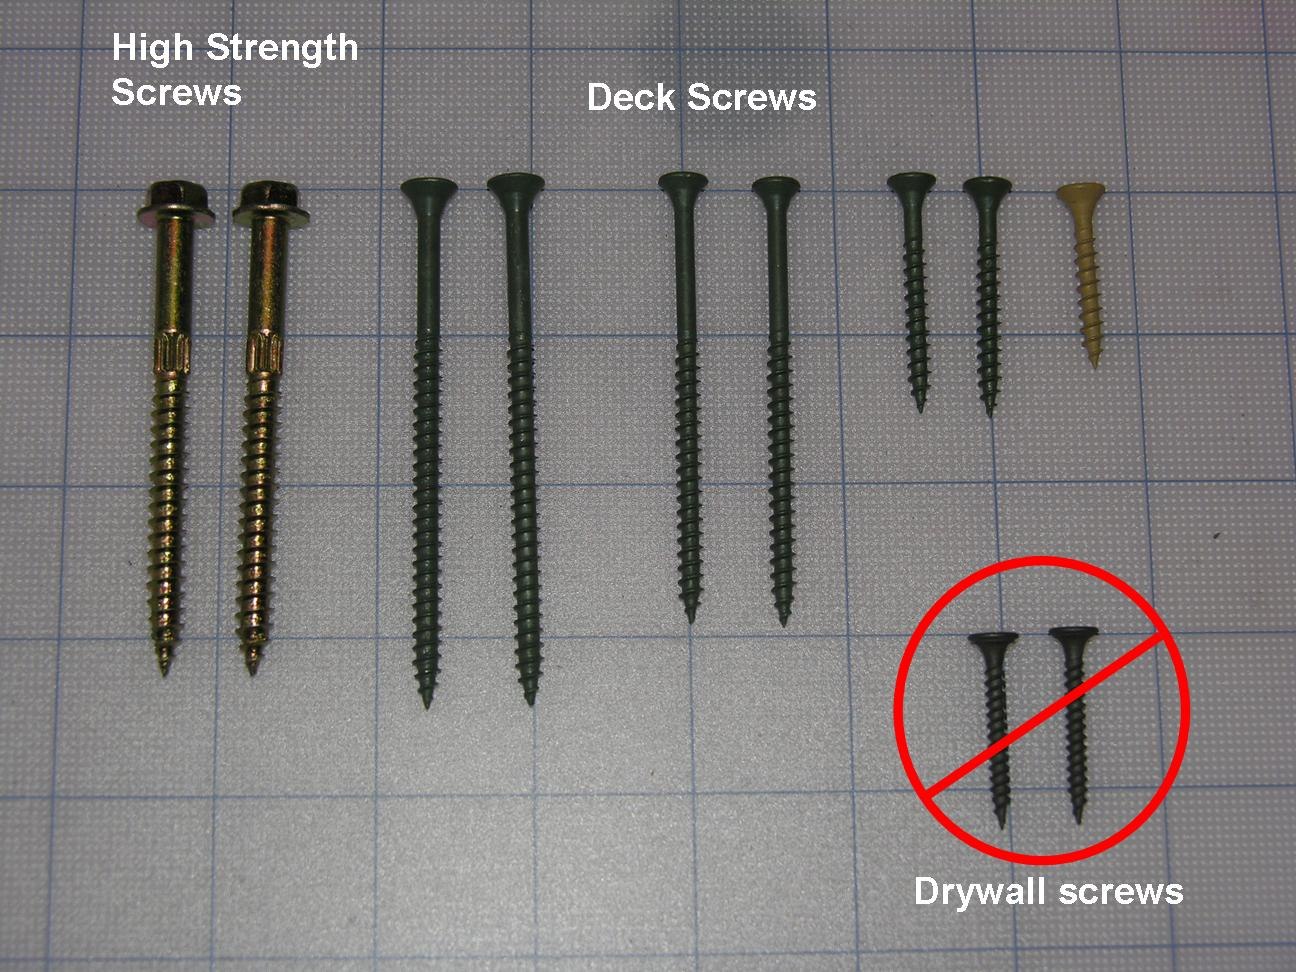 Deck framing screws